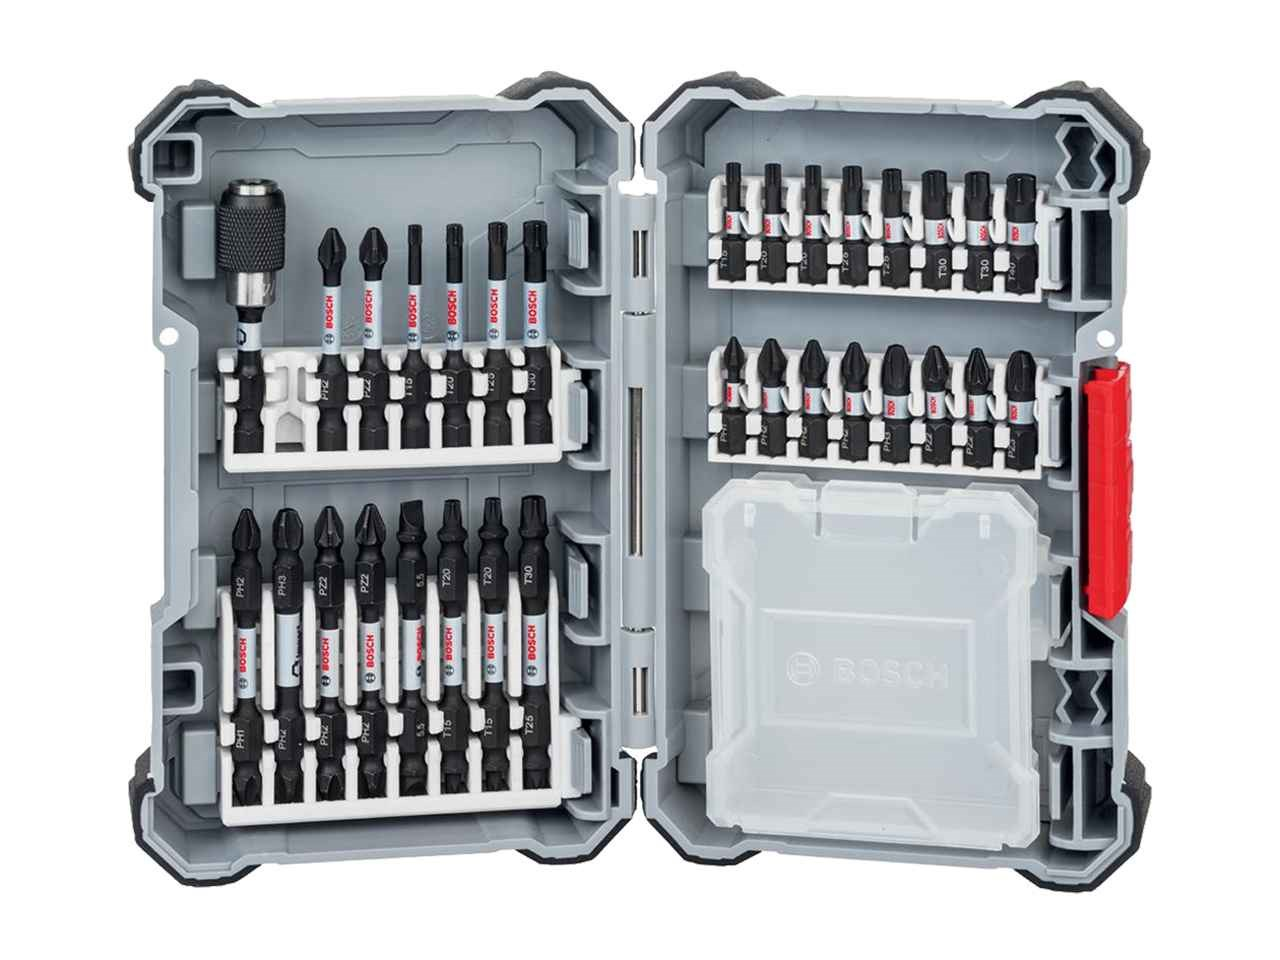 Bosch 31 Piece Impact Control Screwdriver Bit Set